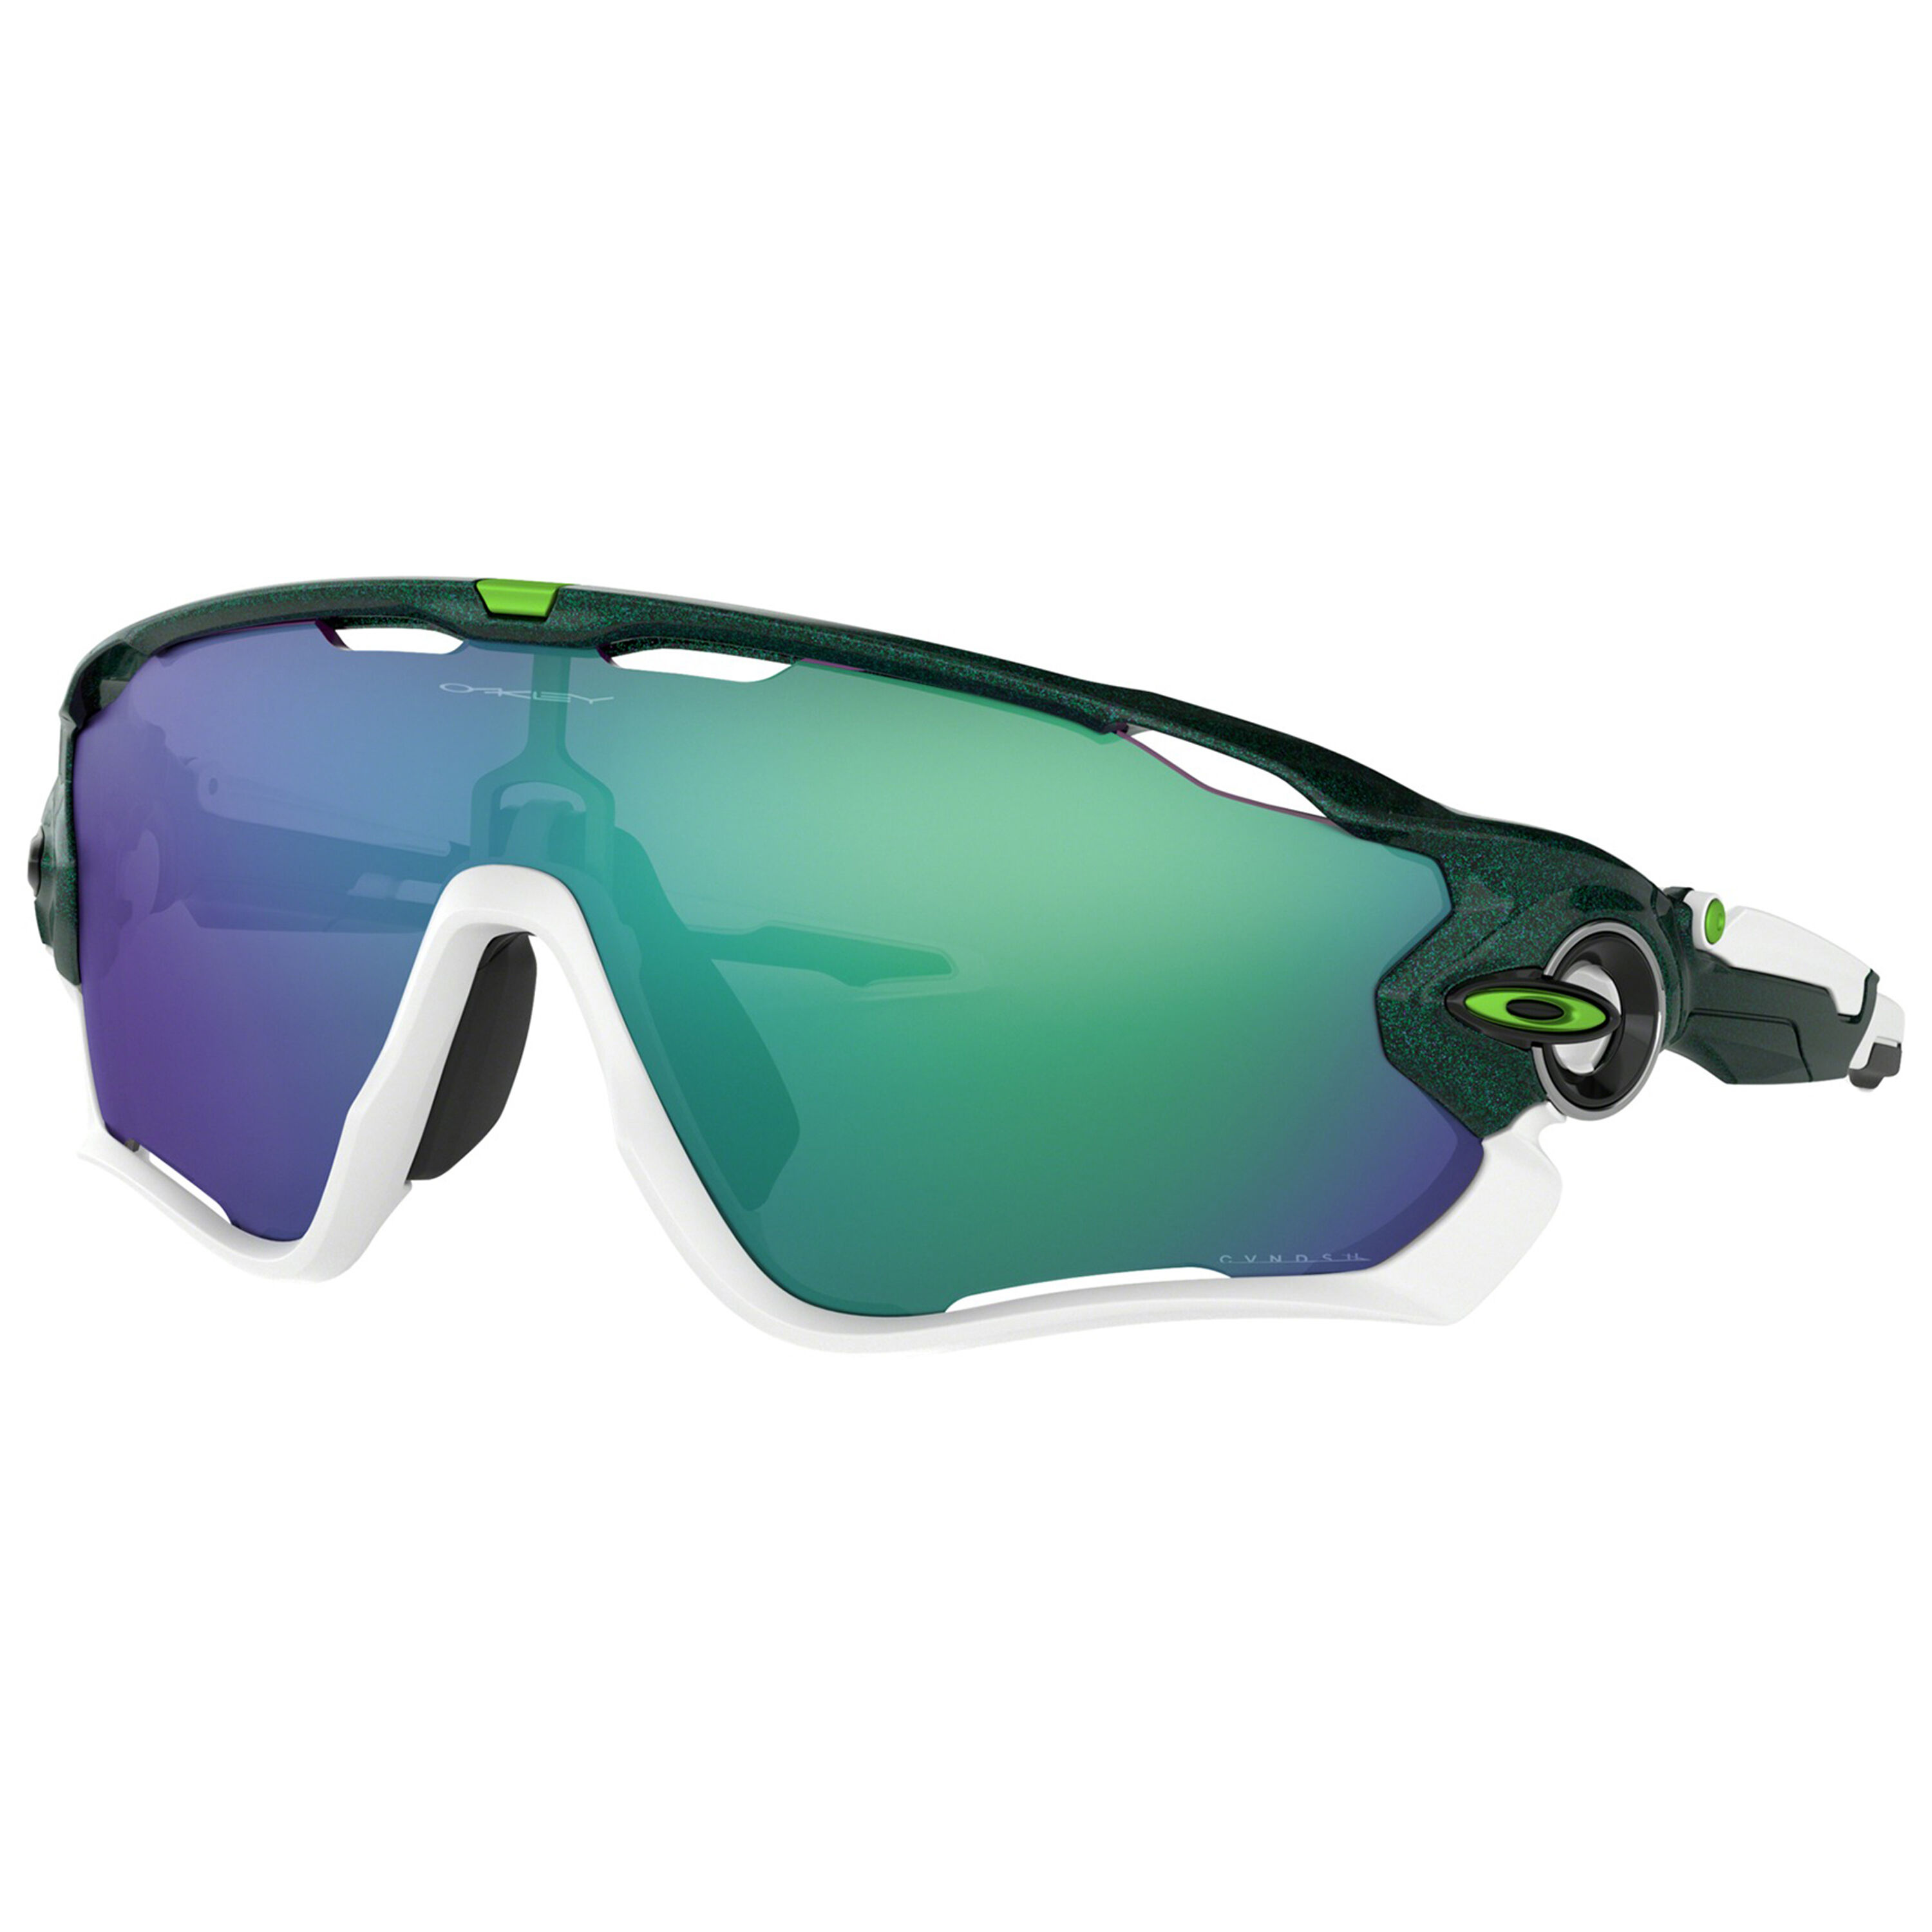 f9449810f49 Oakley Jawbreaker Prizm Jade Cavendish eyewear. Brand  Oakley. Be the first  to review this product